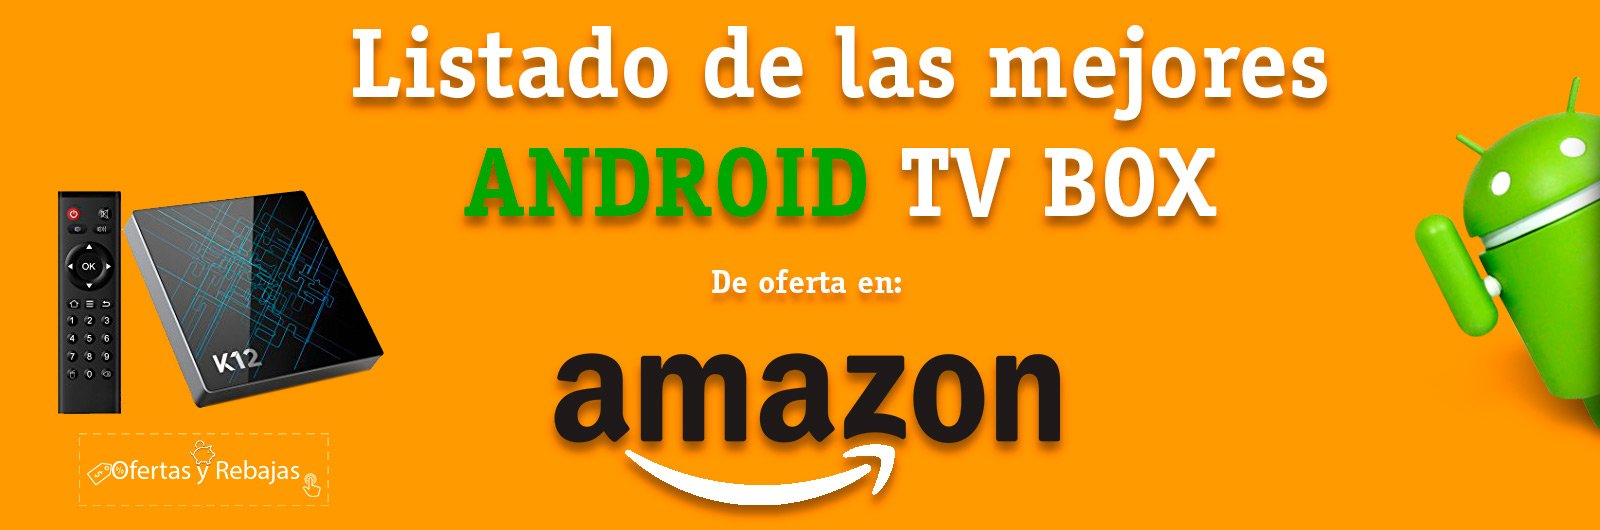 mejores android tv box 2017